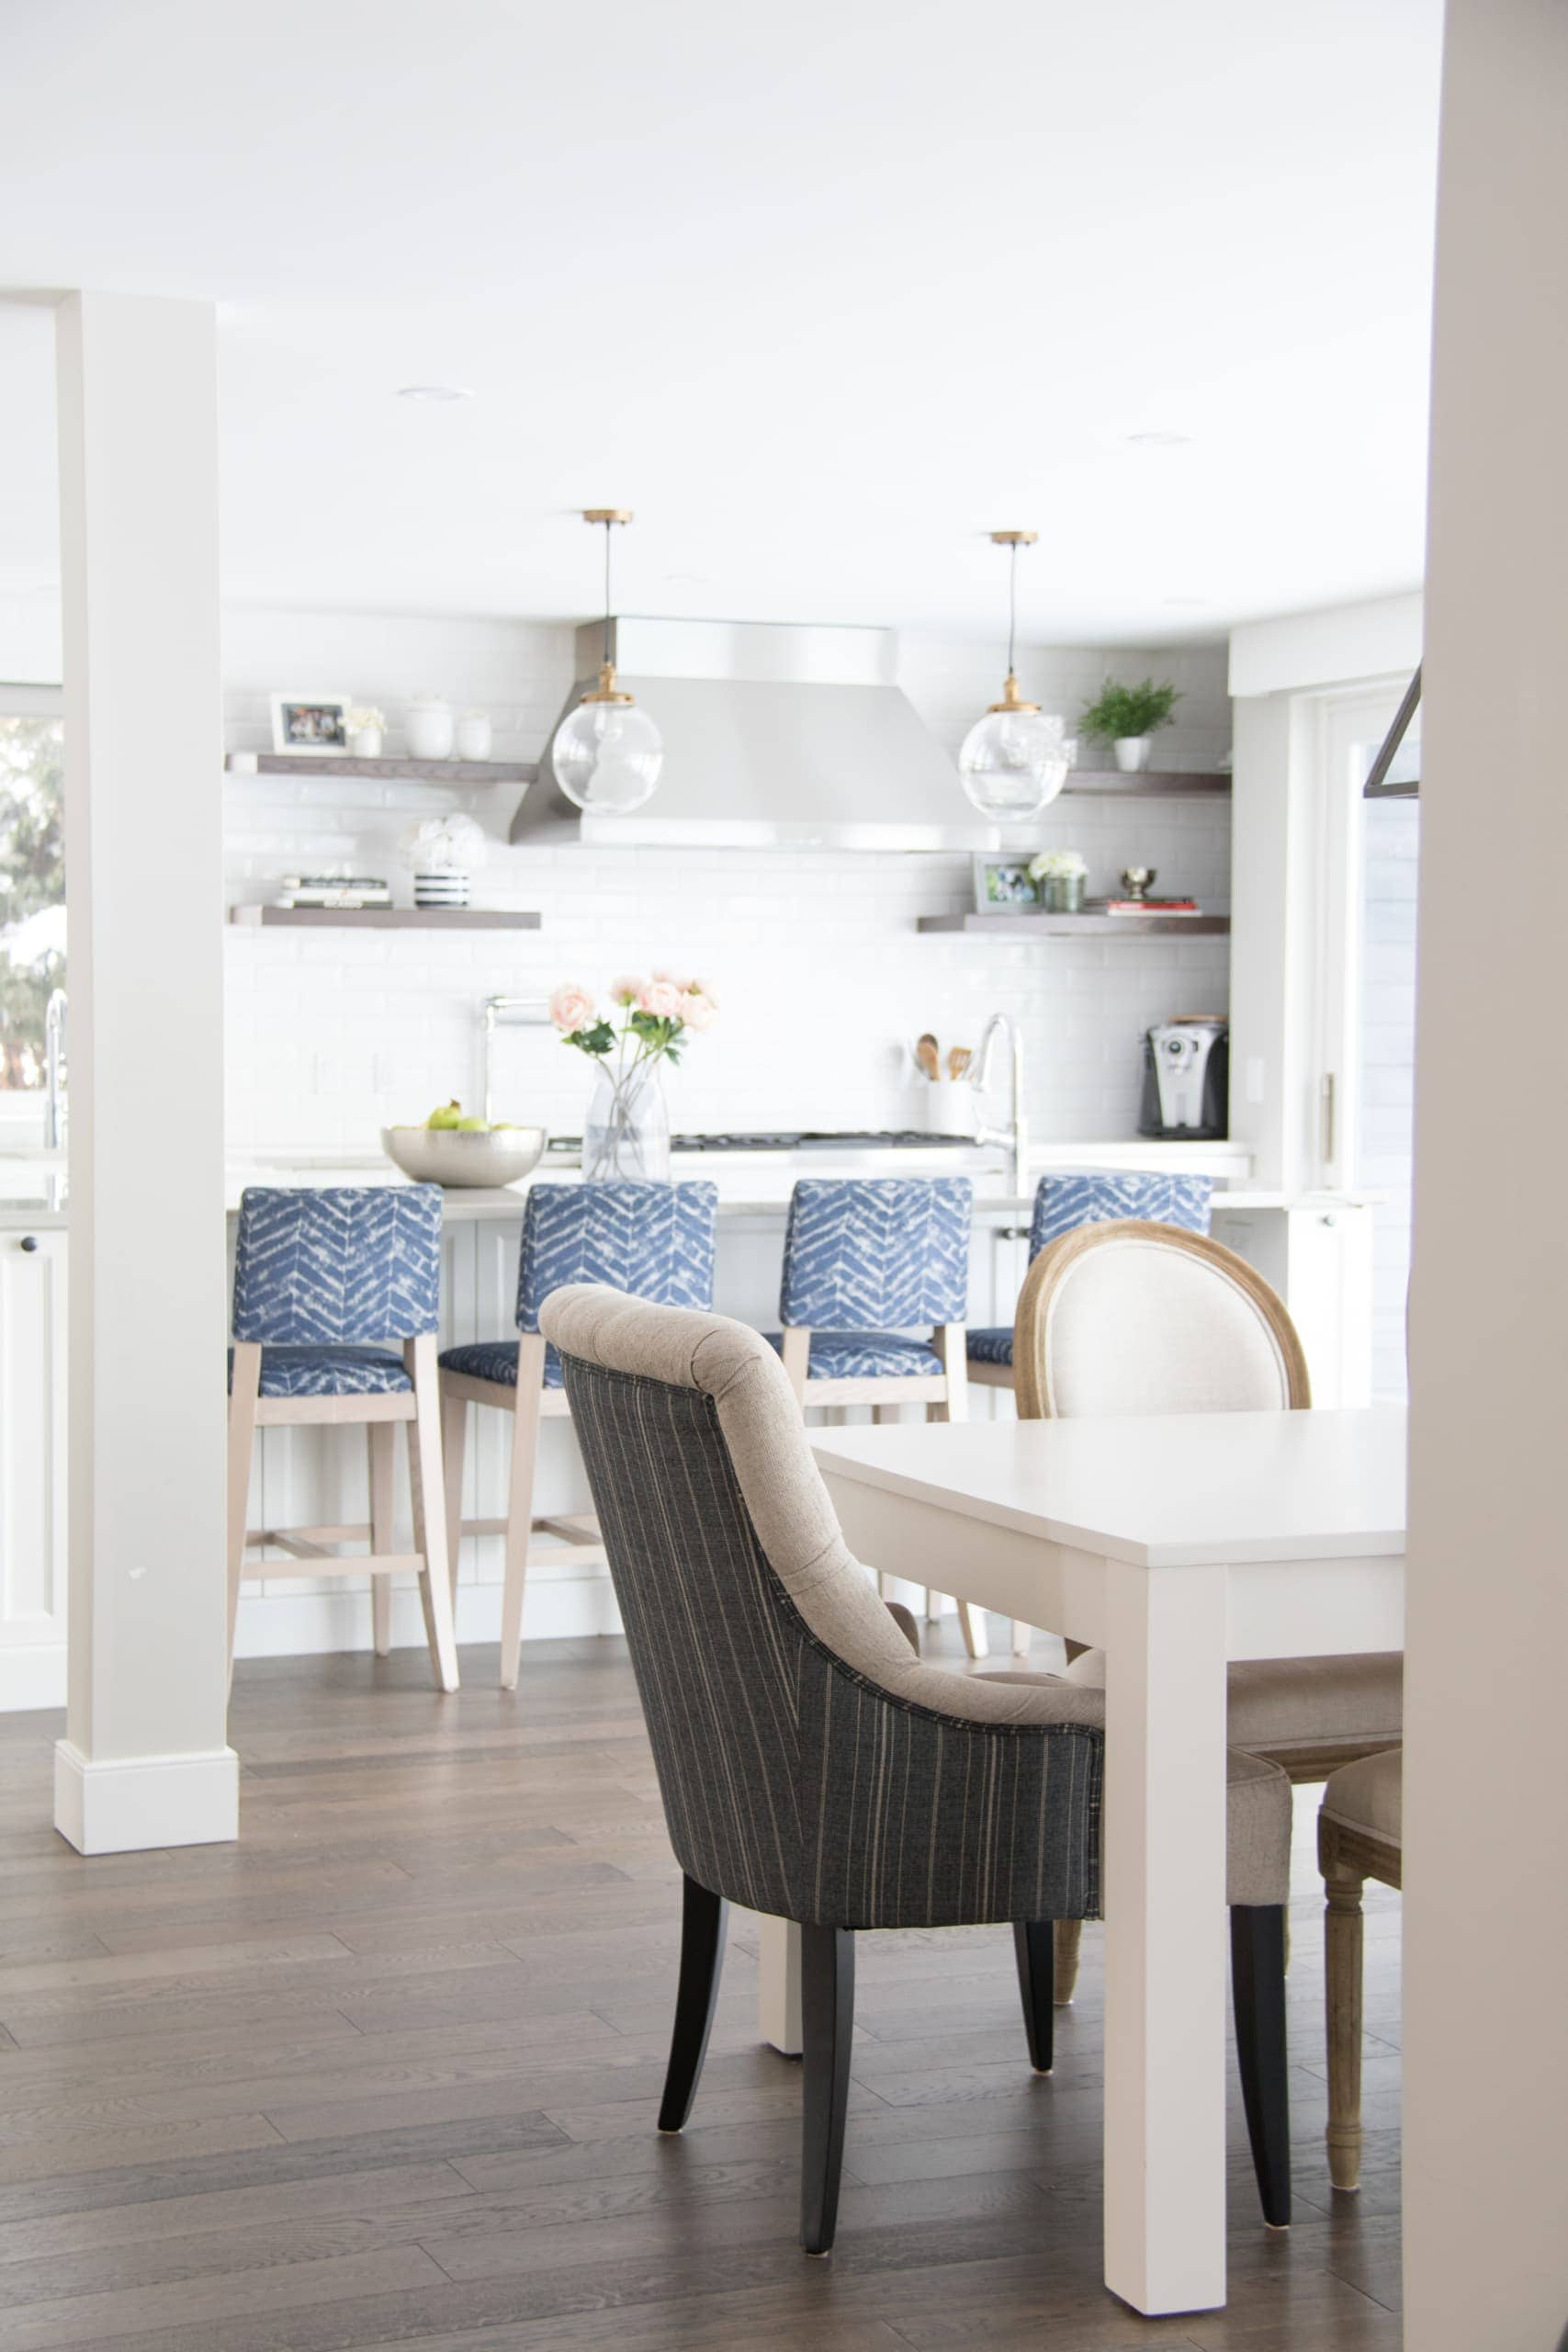 Bright, modern kitchen with dining room table next to it